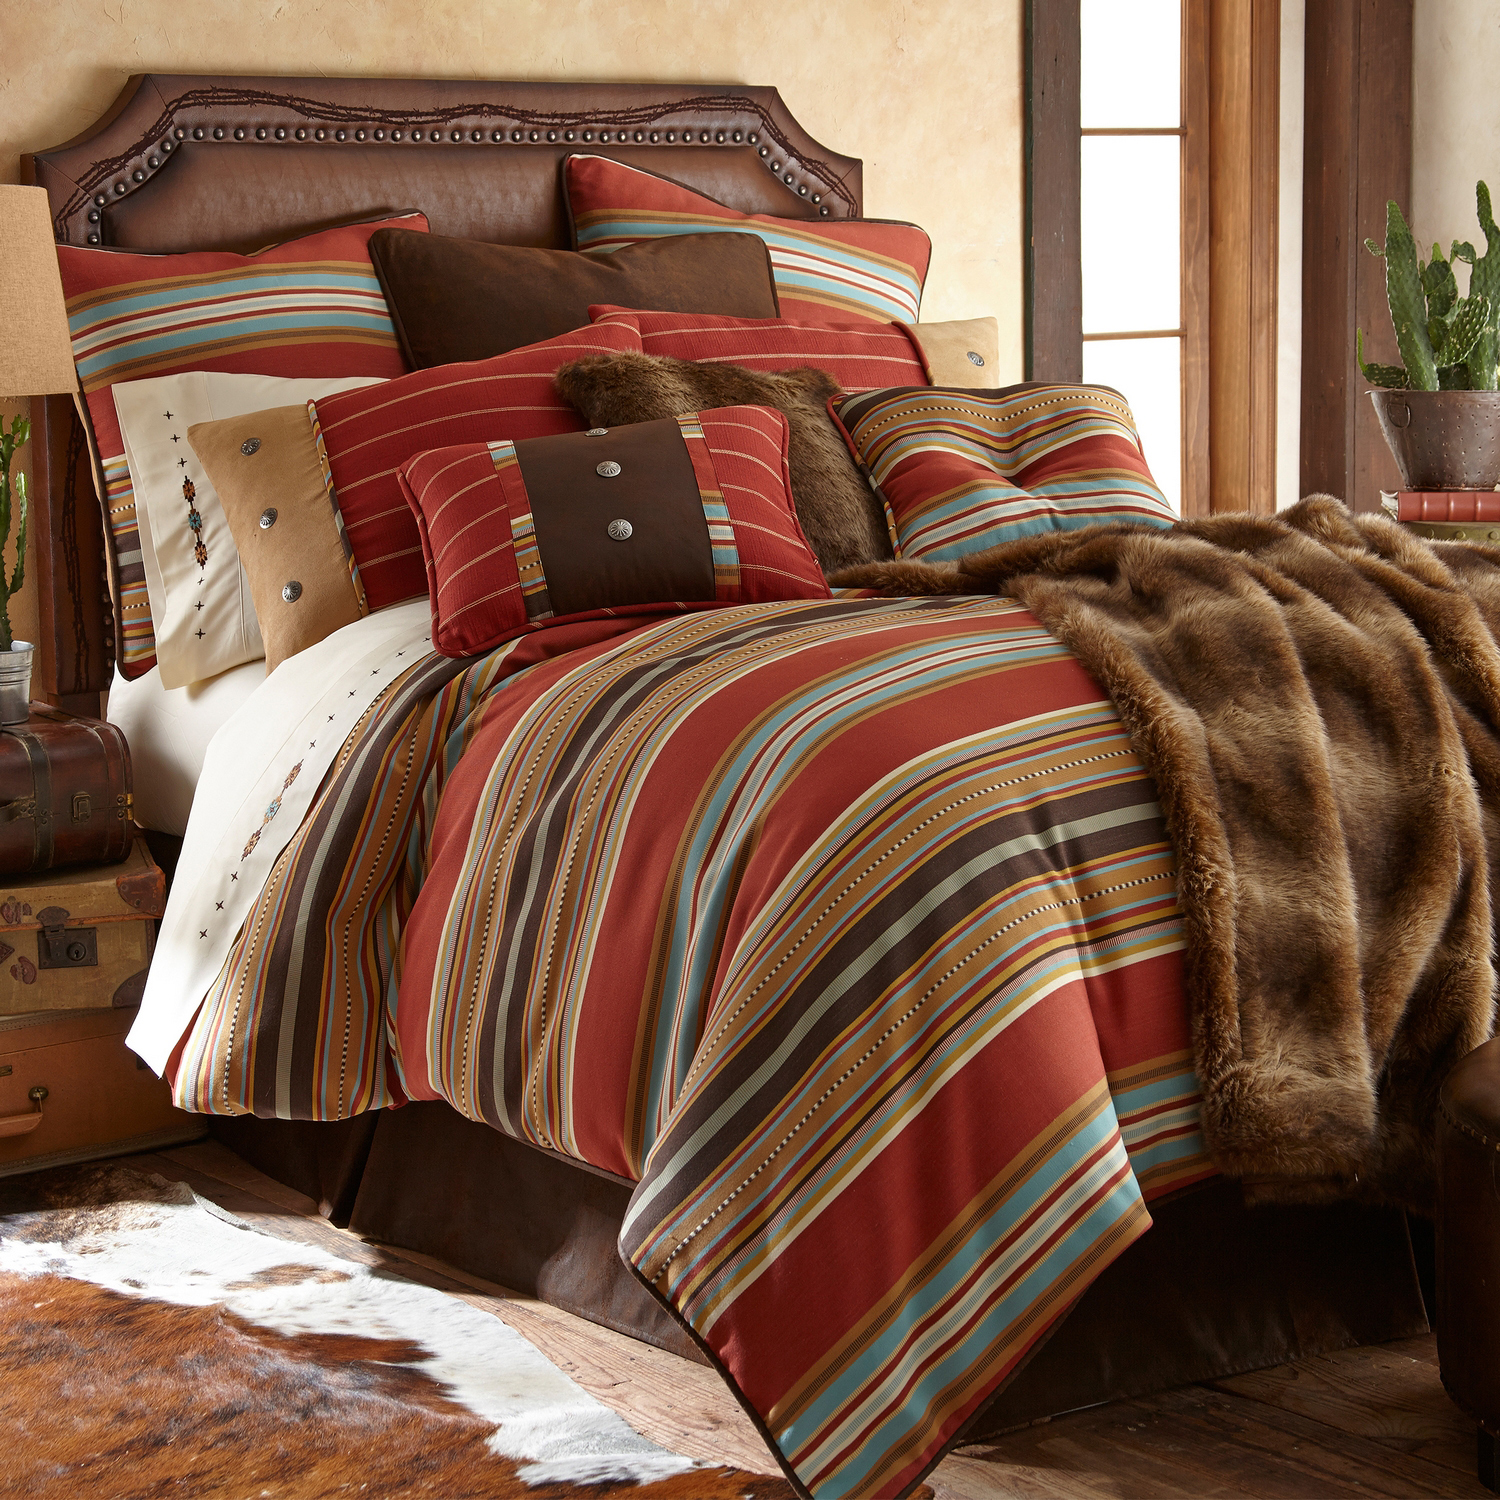 Calhoun By Hiend Accents Homemax By Hiend Accents